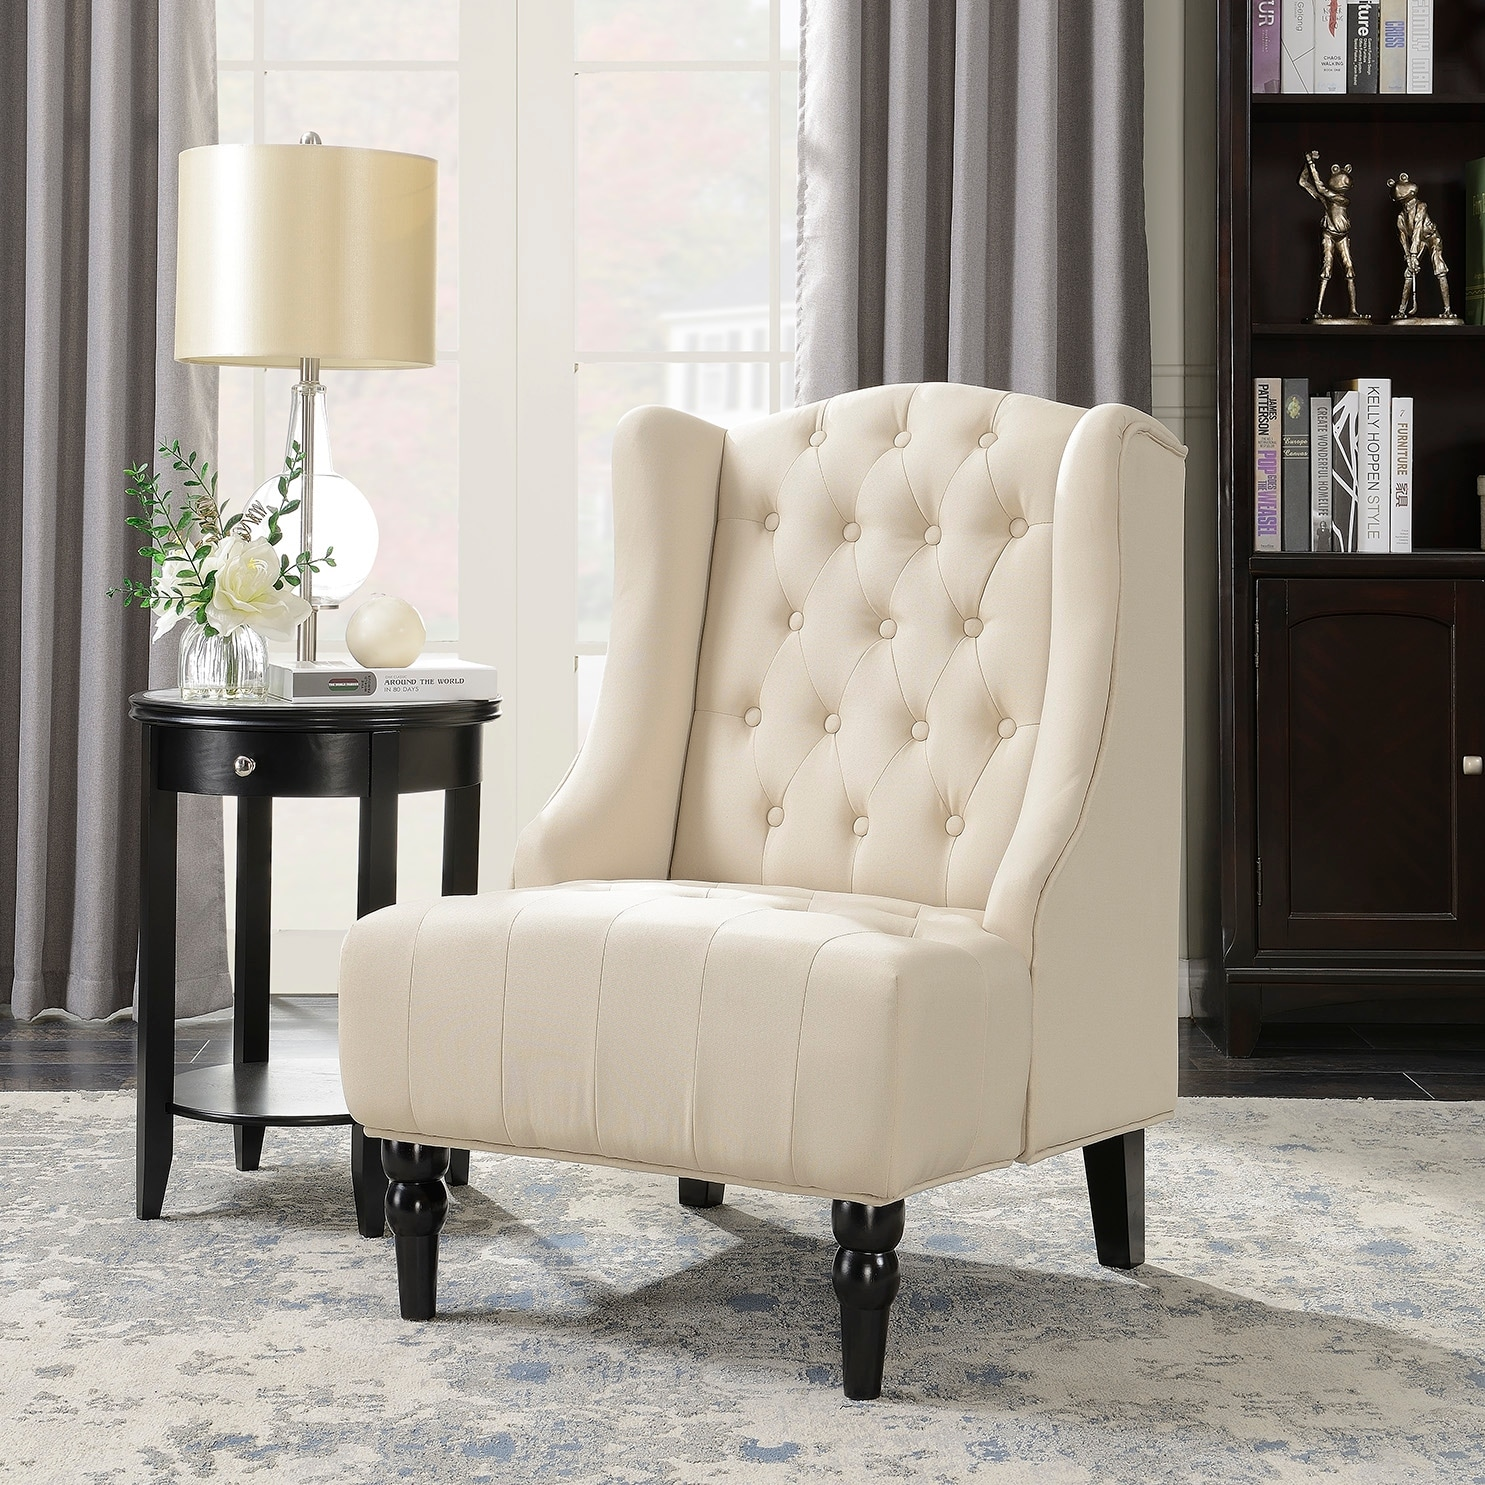 Belleze Tall Wingback Tufted Fabric Accent Chair Tufted High Back With Nail Head Beige